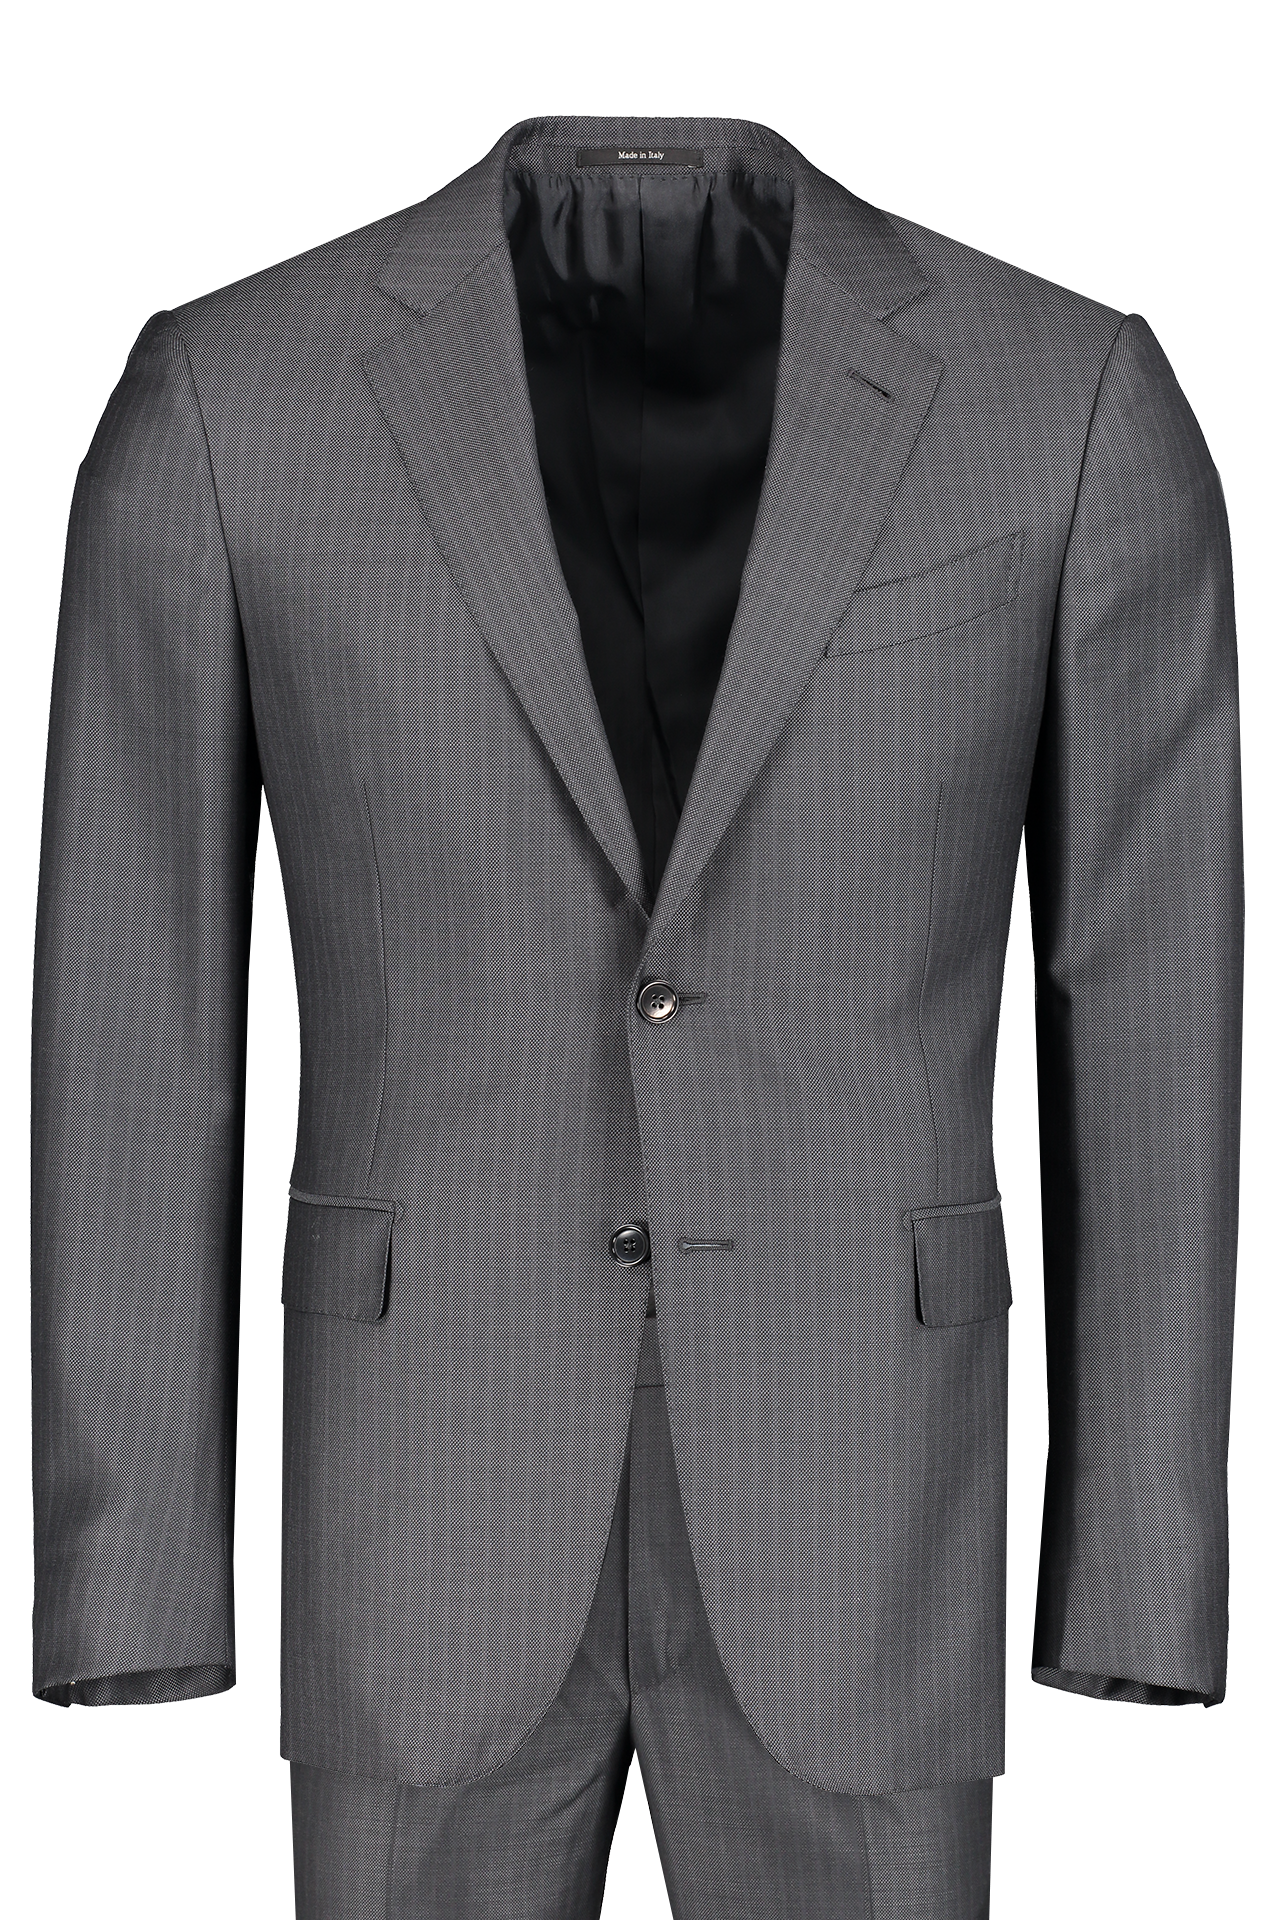 Front view image of Ermenegildo Zegna Multiseason Stripe Milano Suit Grey